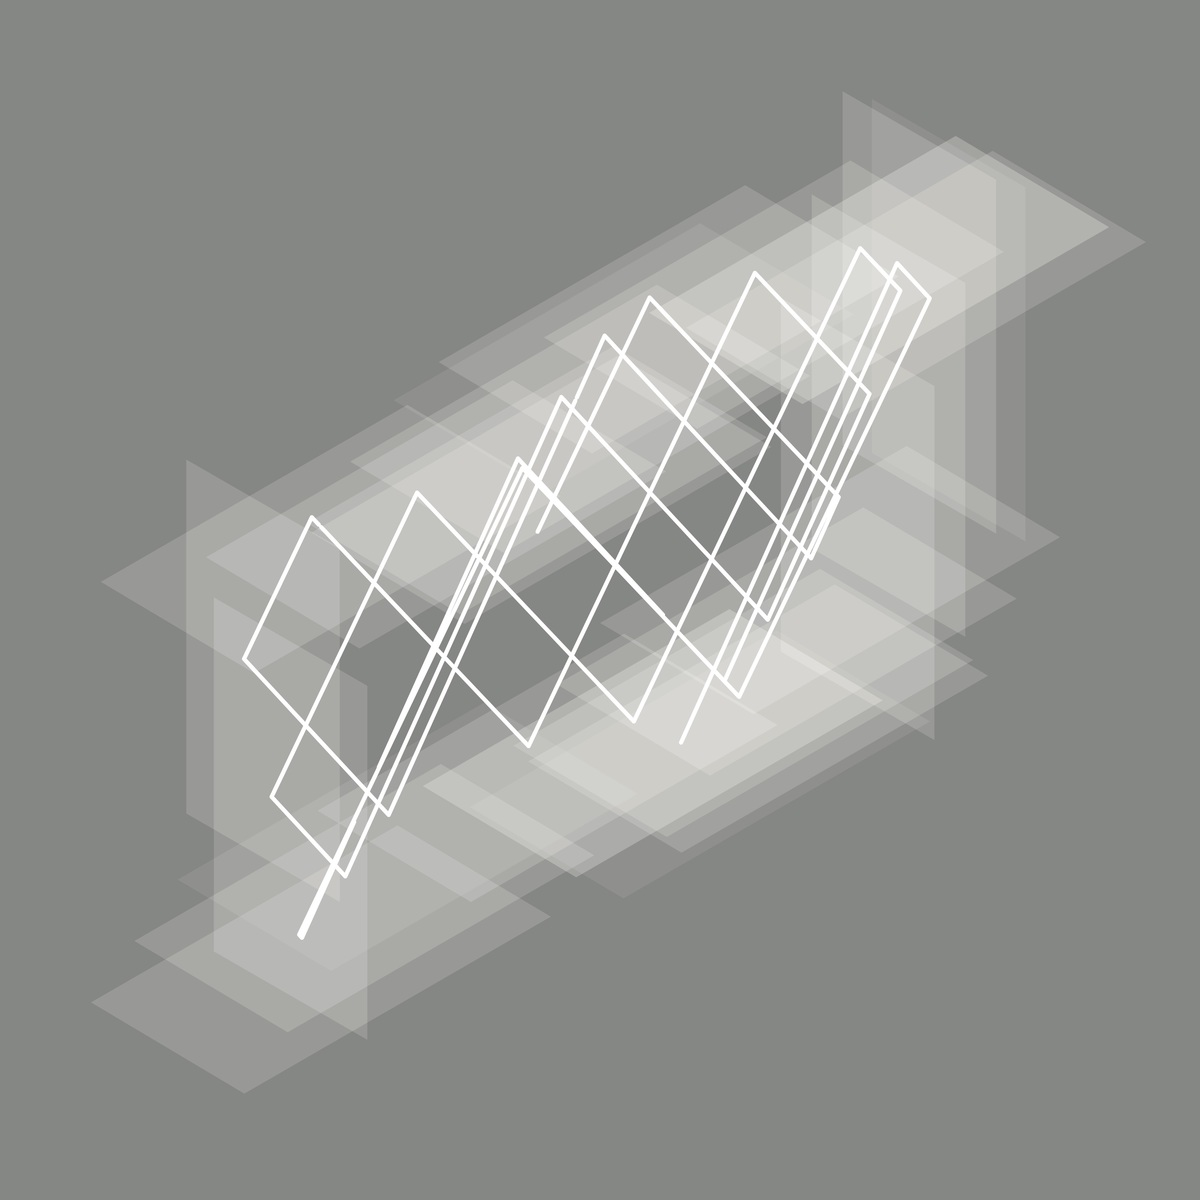 Parametric study of the interaction of light and a reflective surface. Credit: Alan Ruiz